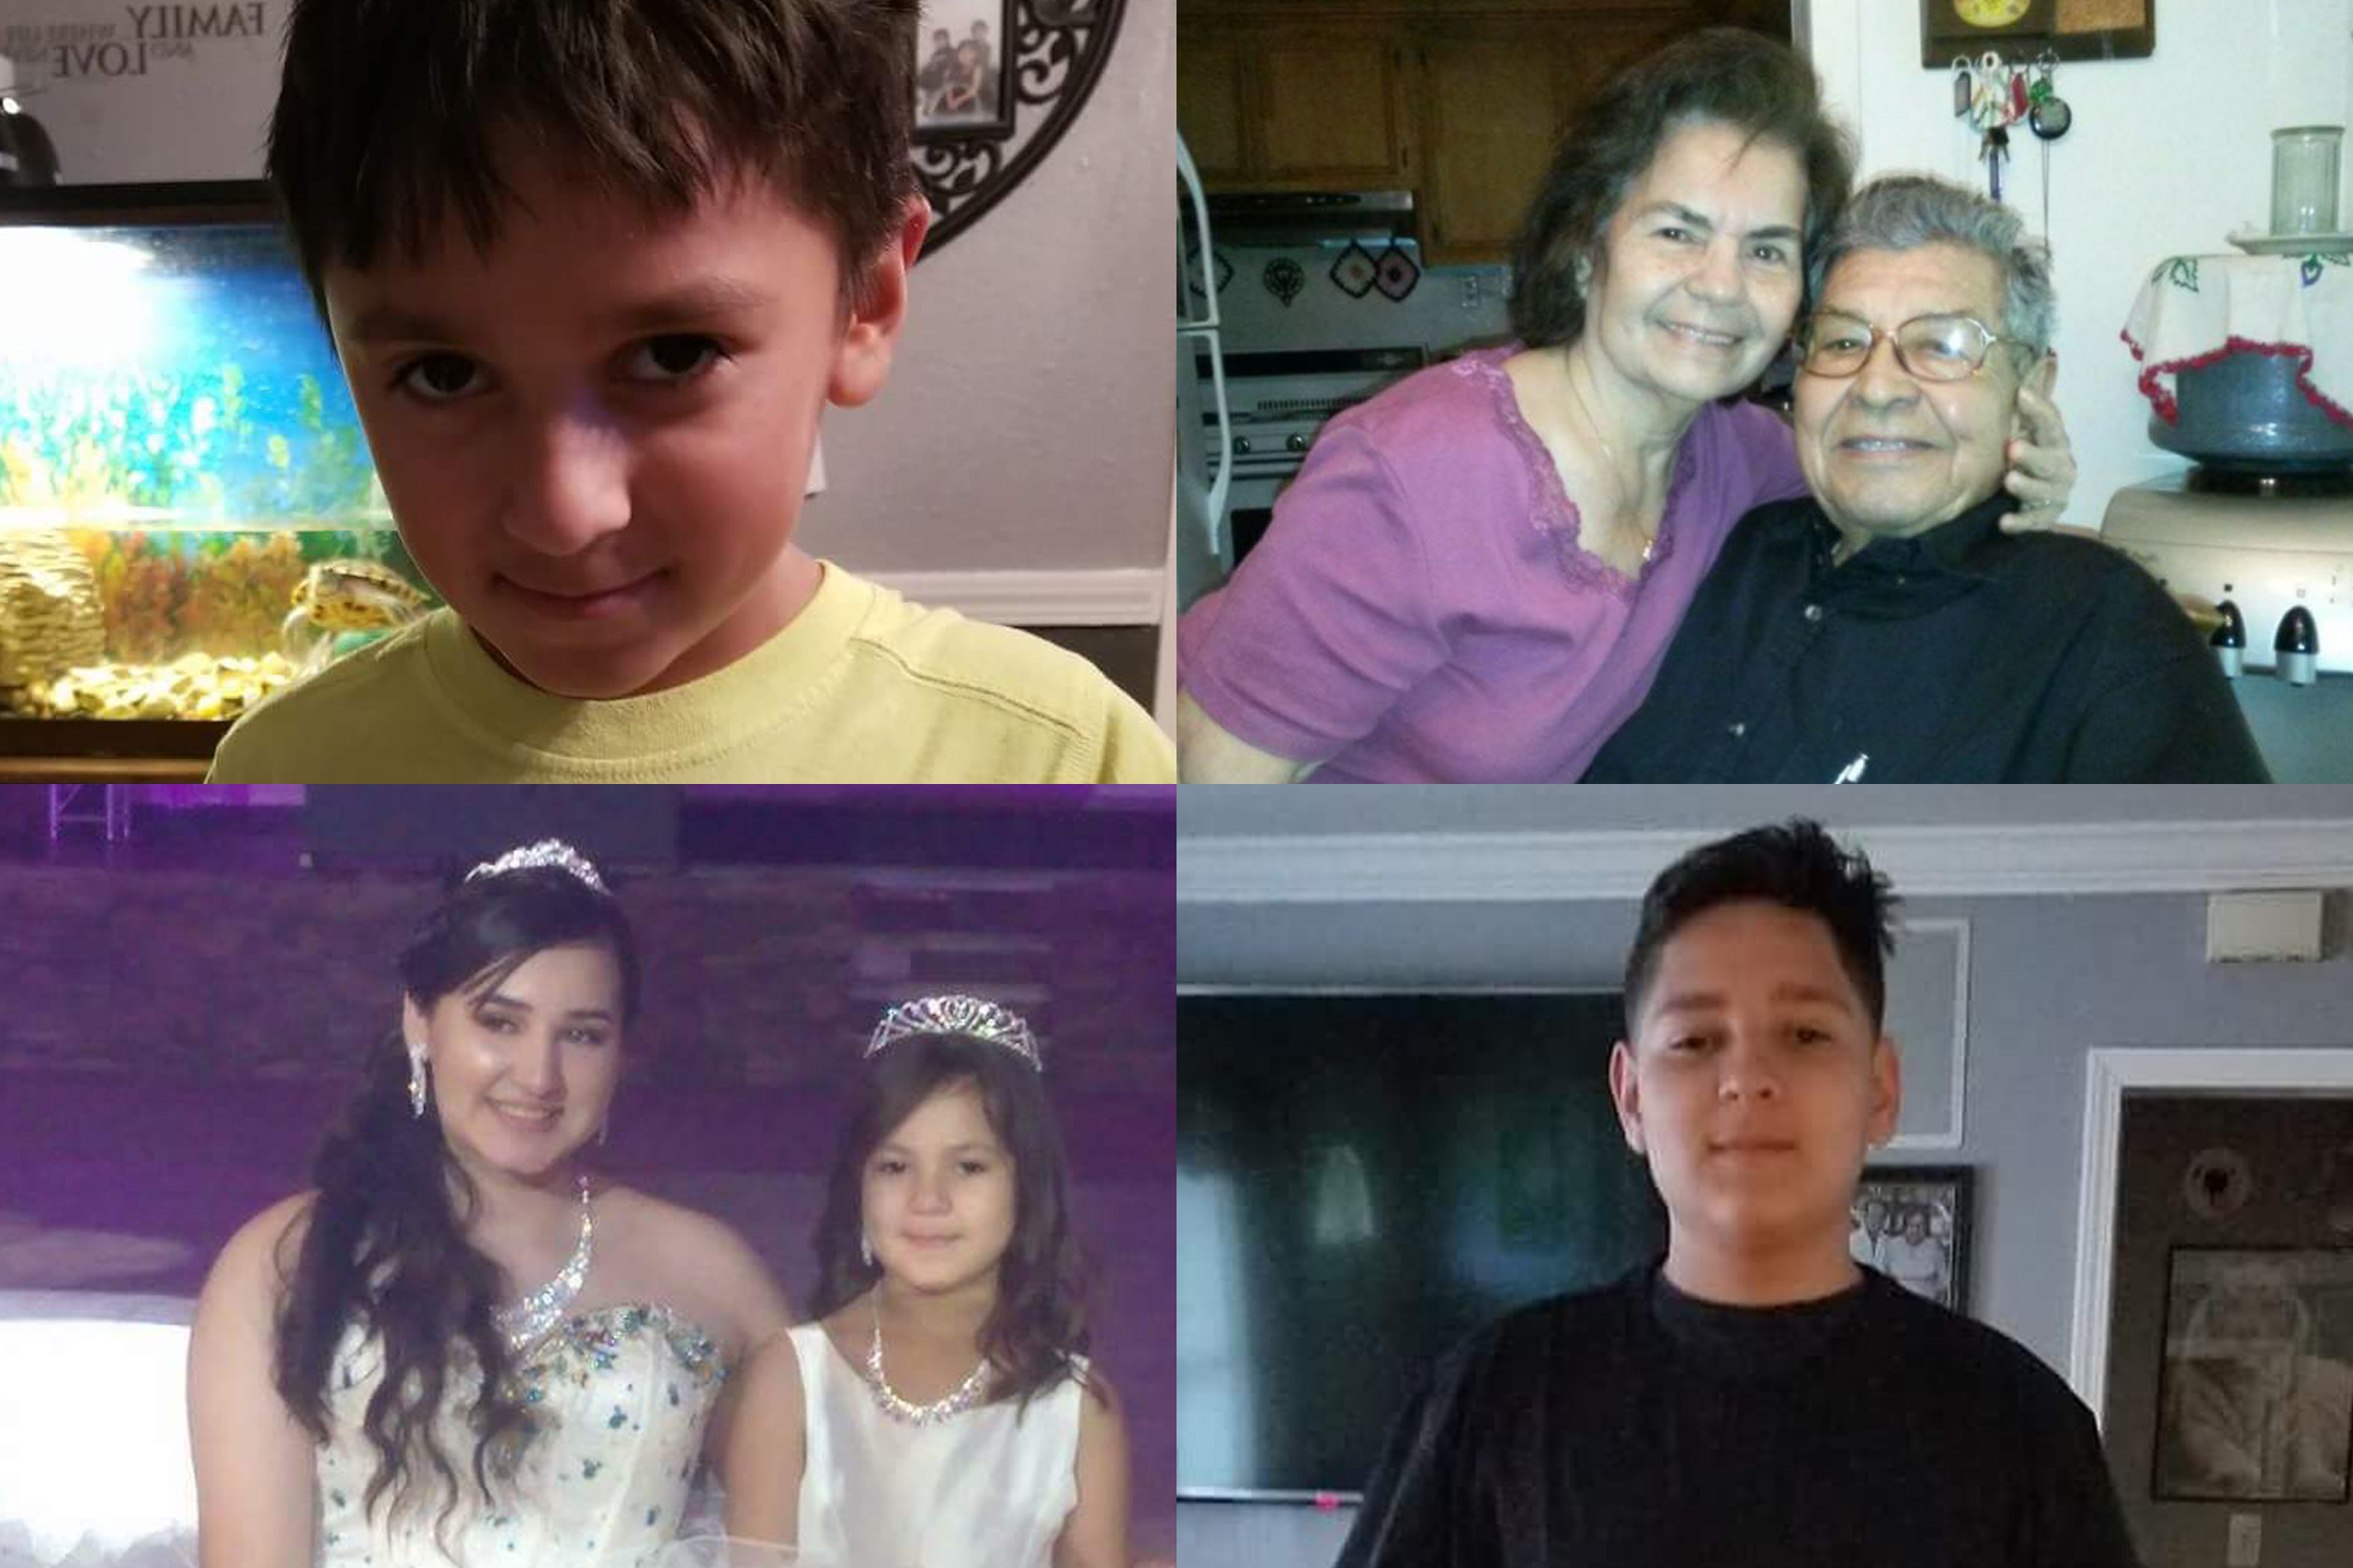 Top left: Xavier Saldivar, 8; Top right: Bedia Saldivar, 81, and Manuel Saldivar, 84; Bottom left: Devy Saldivar, 16, and Daisy Saldivar, 6; Bottom right: Domonic Saldivar, 14